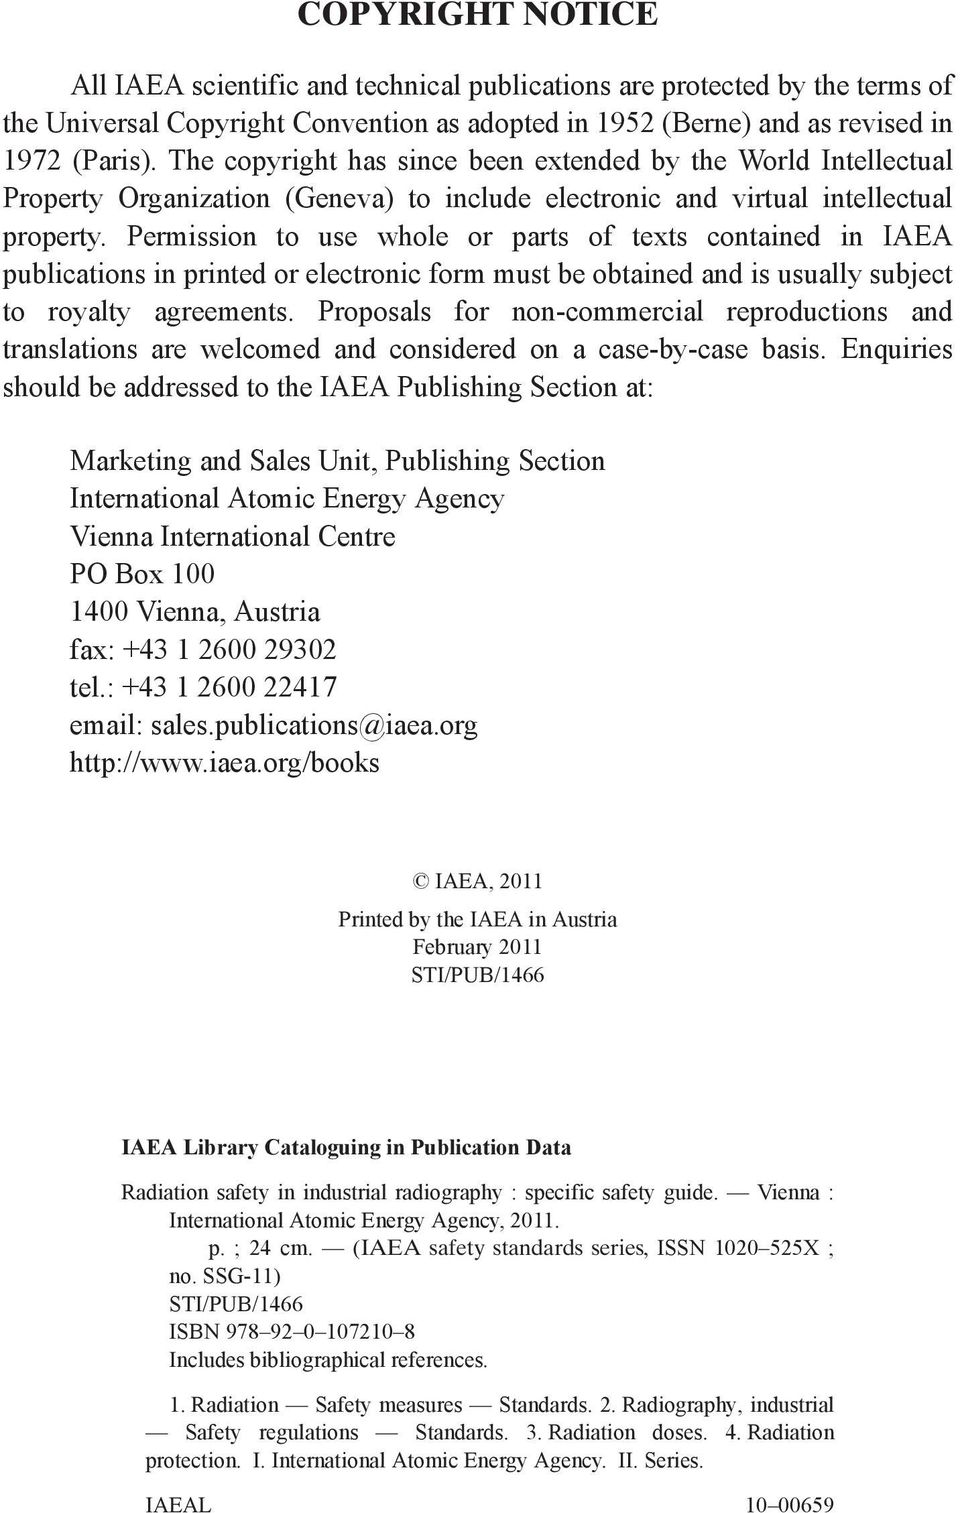 Permission to use whole or parts of texts contained in IAEA publications in printed or electronic form must be obtained and is usually subject to royalty agreements.